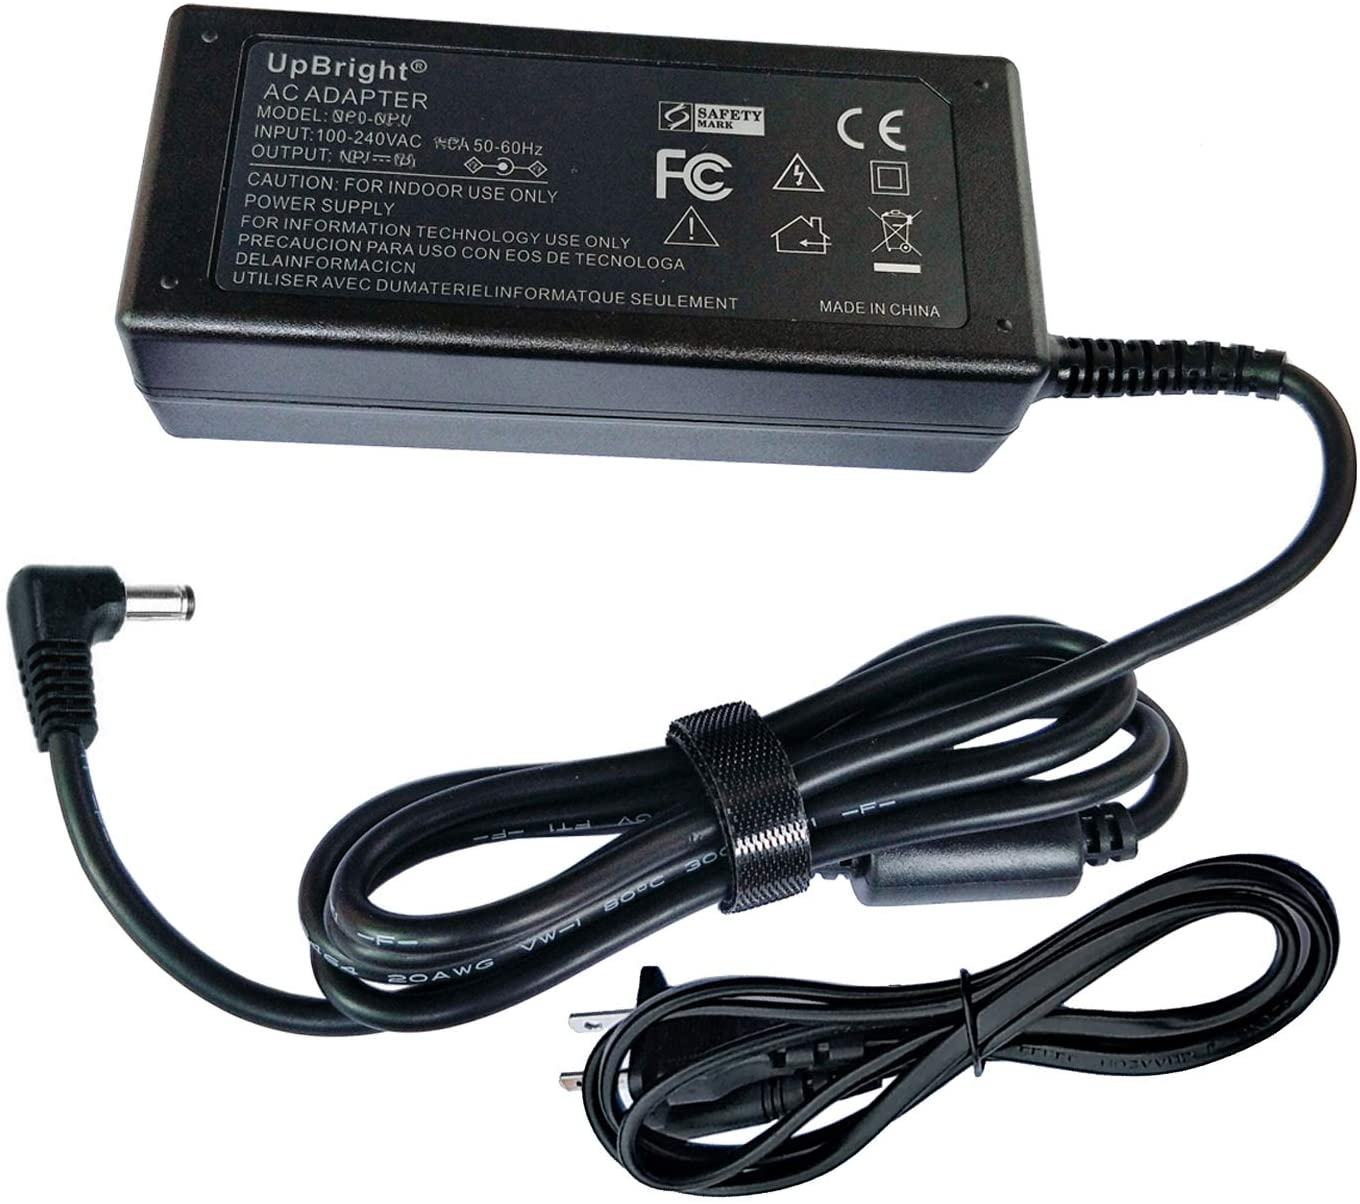 UpBright New 15V AC/DC Adapter Compatible with Sony LF-S50G LFS50G LF-S50G/W LF-S50G/B LF-S50GW LF-S50GB LFS50G LFS50G/W LFS50G/B Wireless Speaker 15VDC Power Supply Cord Battery Charger Mains PSU